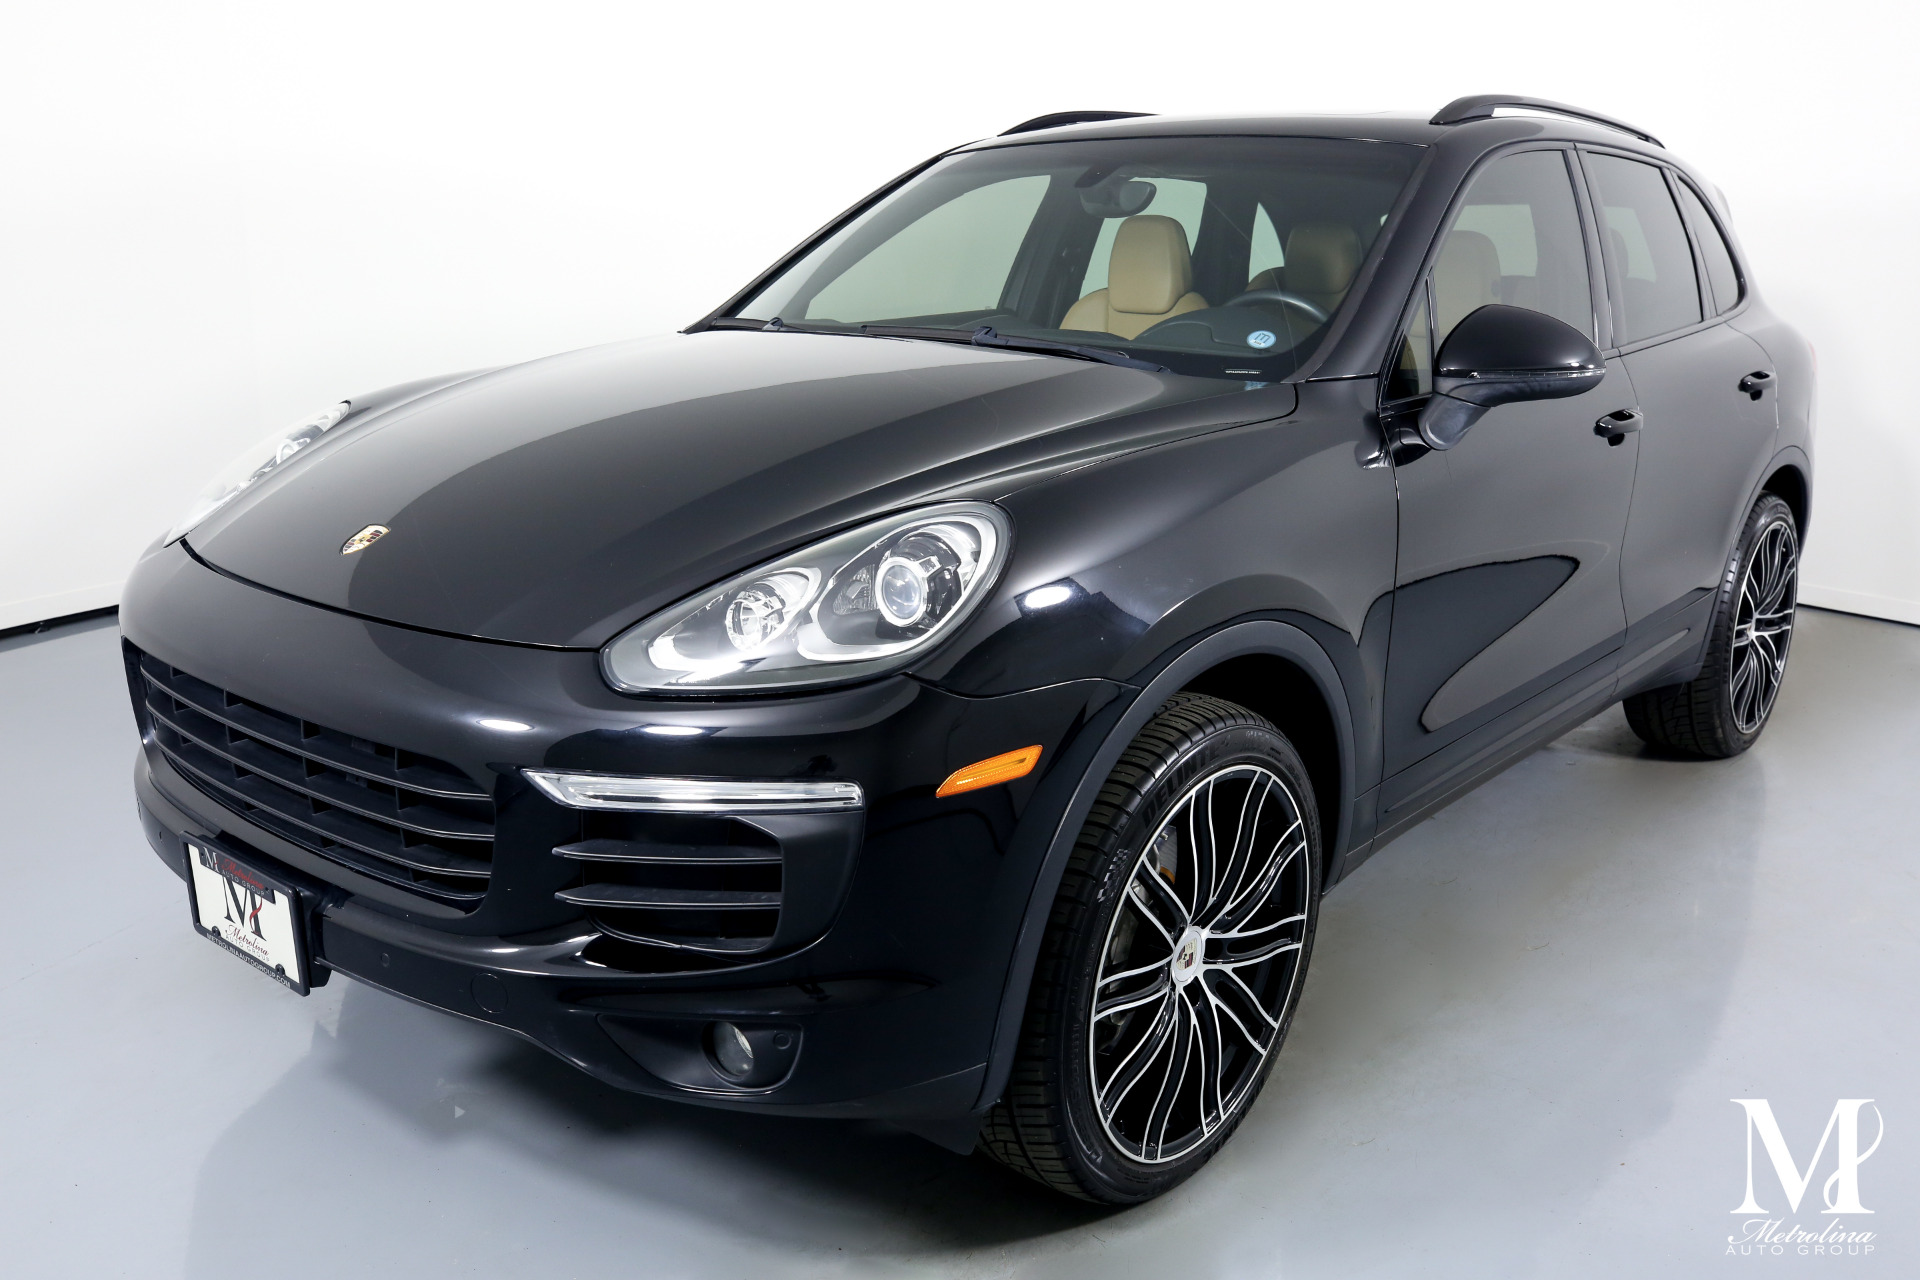 Used 2016 Porsche Cayenne for sale Sold at Metrolina Auto Group in Charlotte NC 28217 - 4